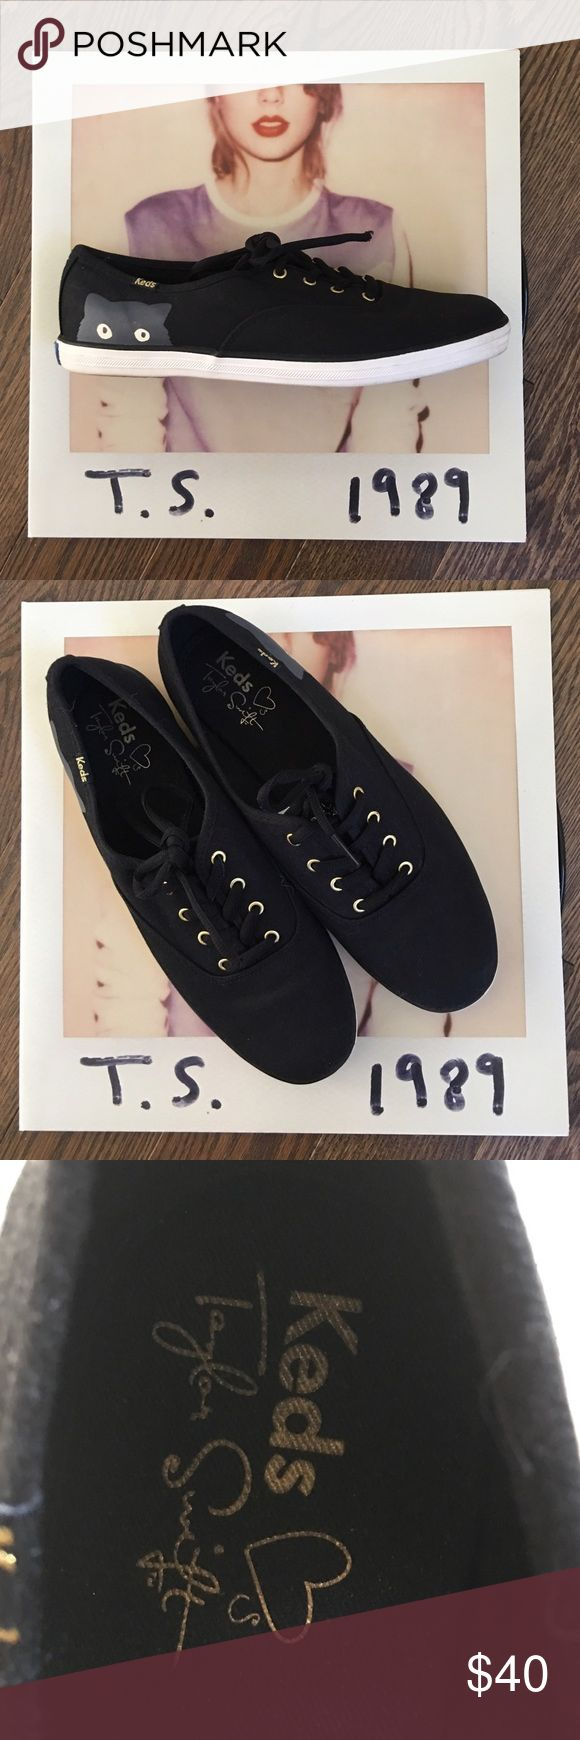 """Host PickTaylor Swift Keds Keds """"Taylor Swift Sneaky Cat""""  Size 8.5. Worn once. keds Shoes Sneakers"""